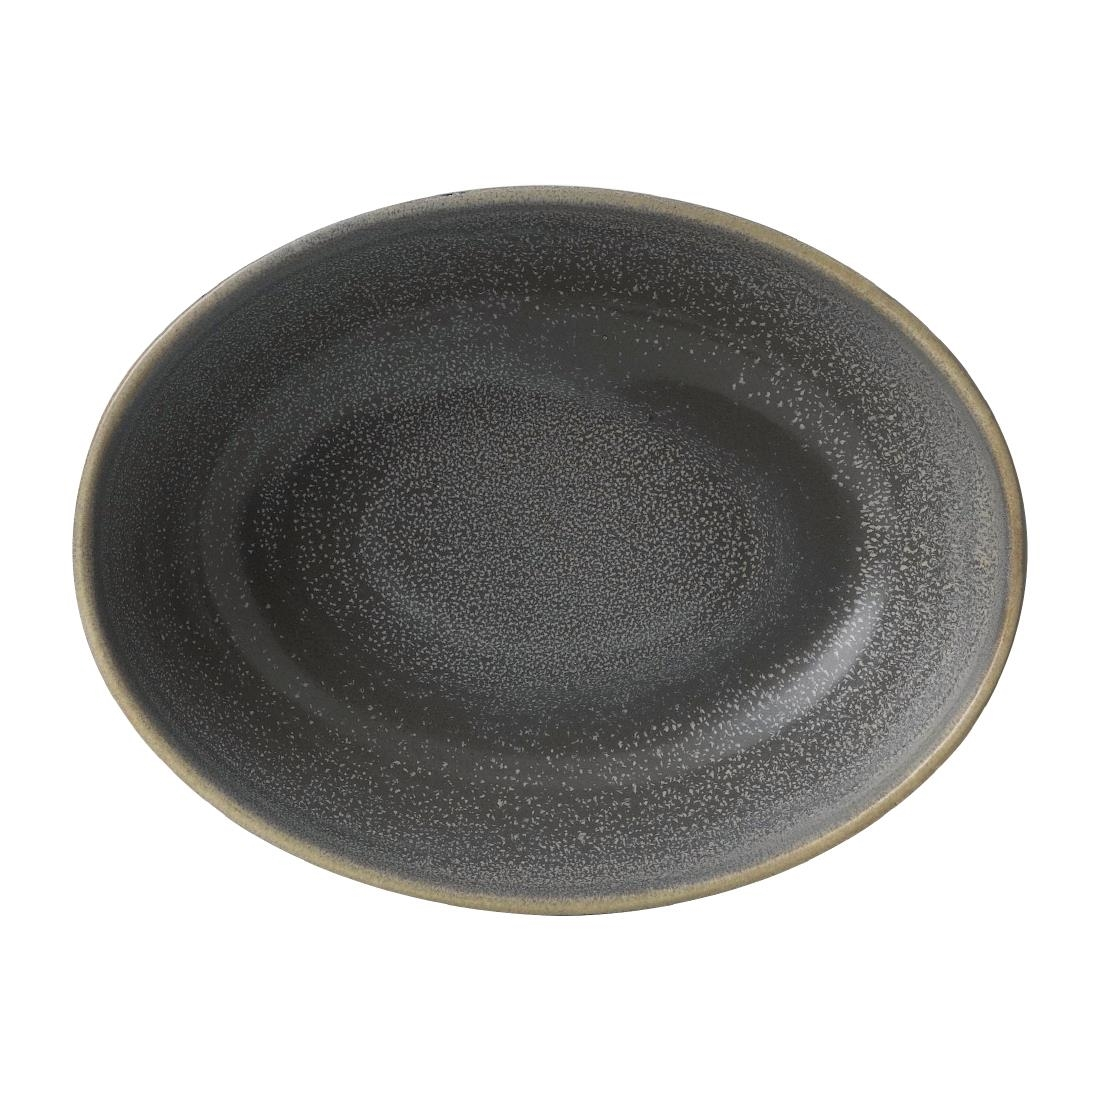 Image of Dudson Evo Granite Deep Oval Bowl 216 x 162mm (Pack of 6) Pack of 6